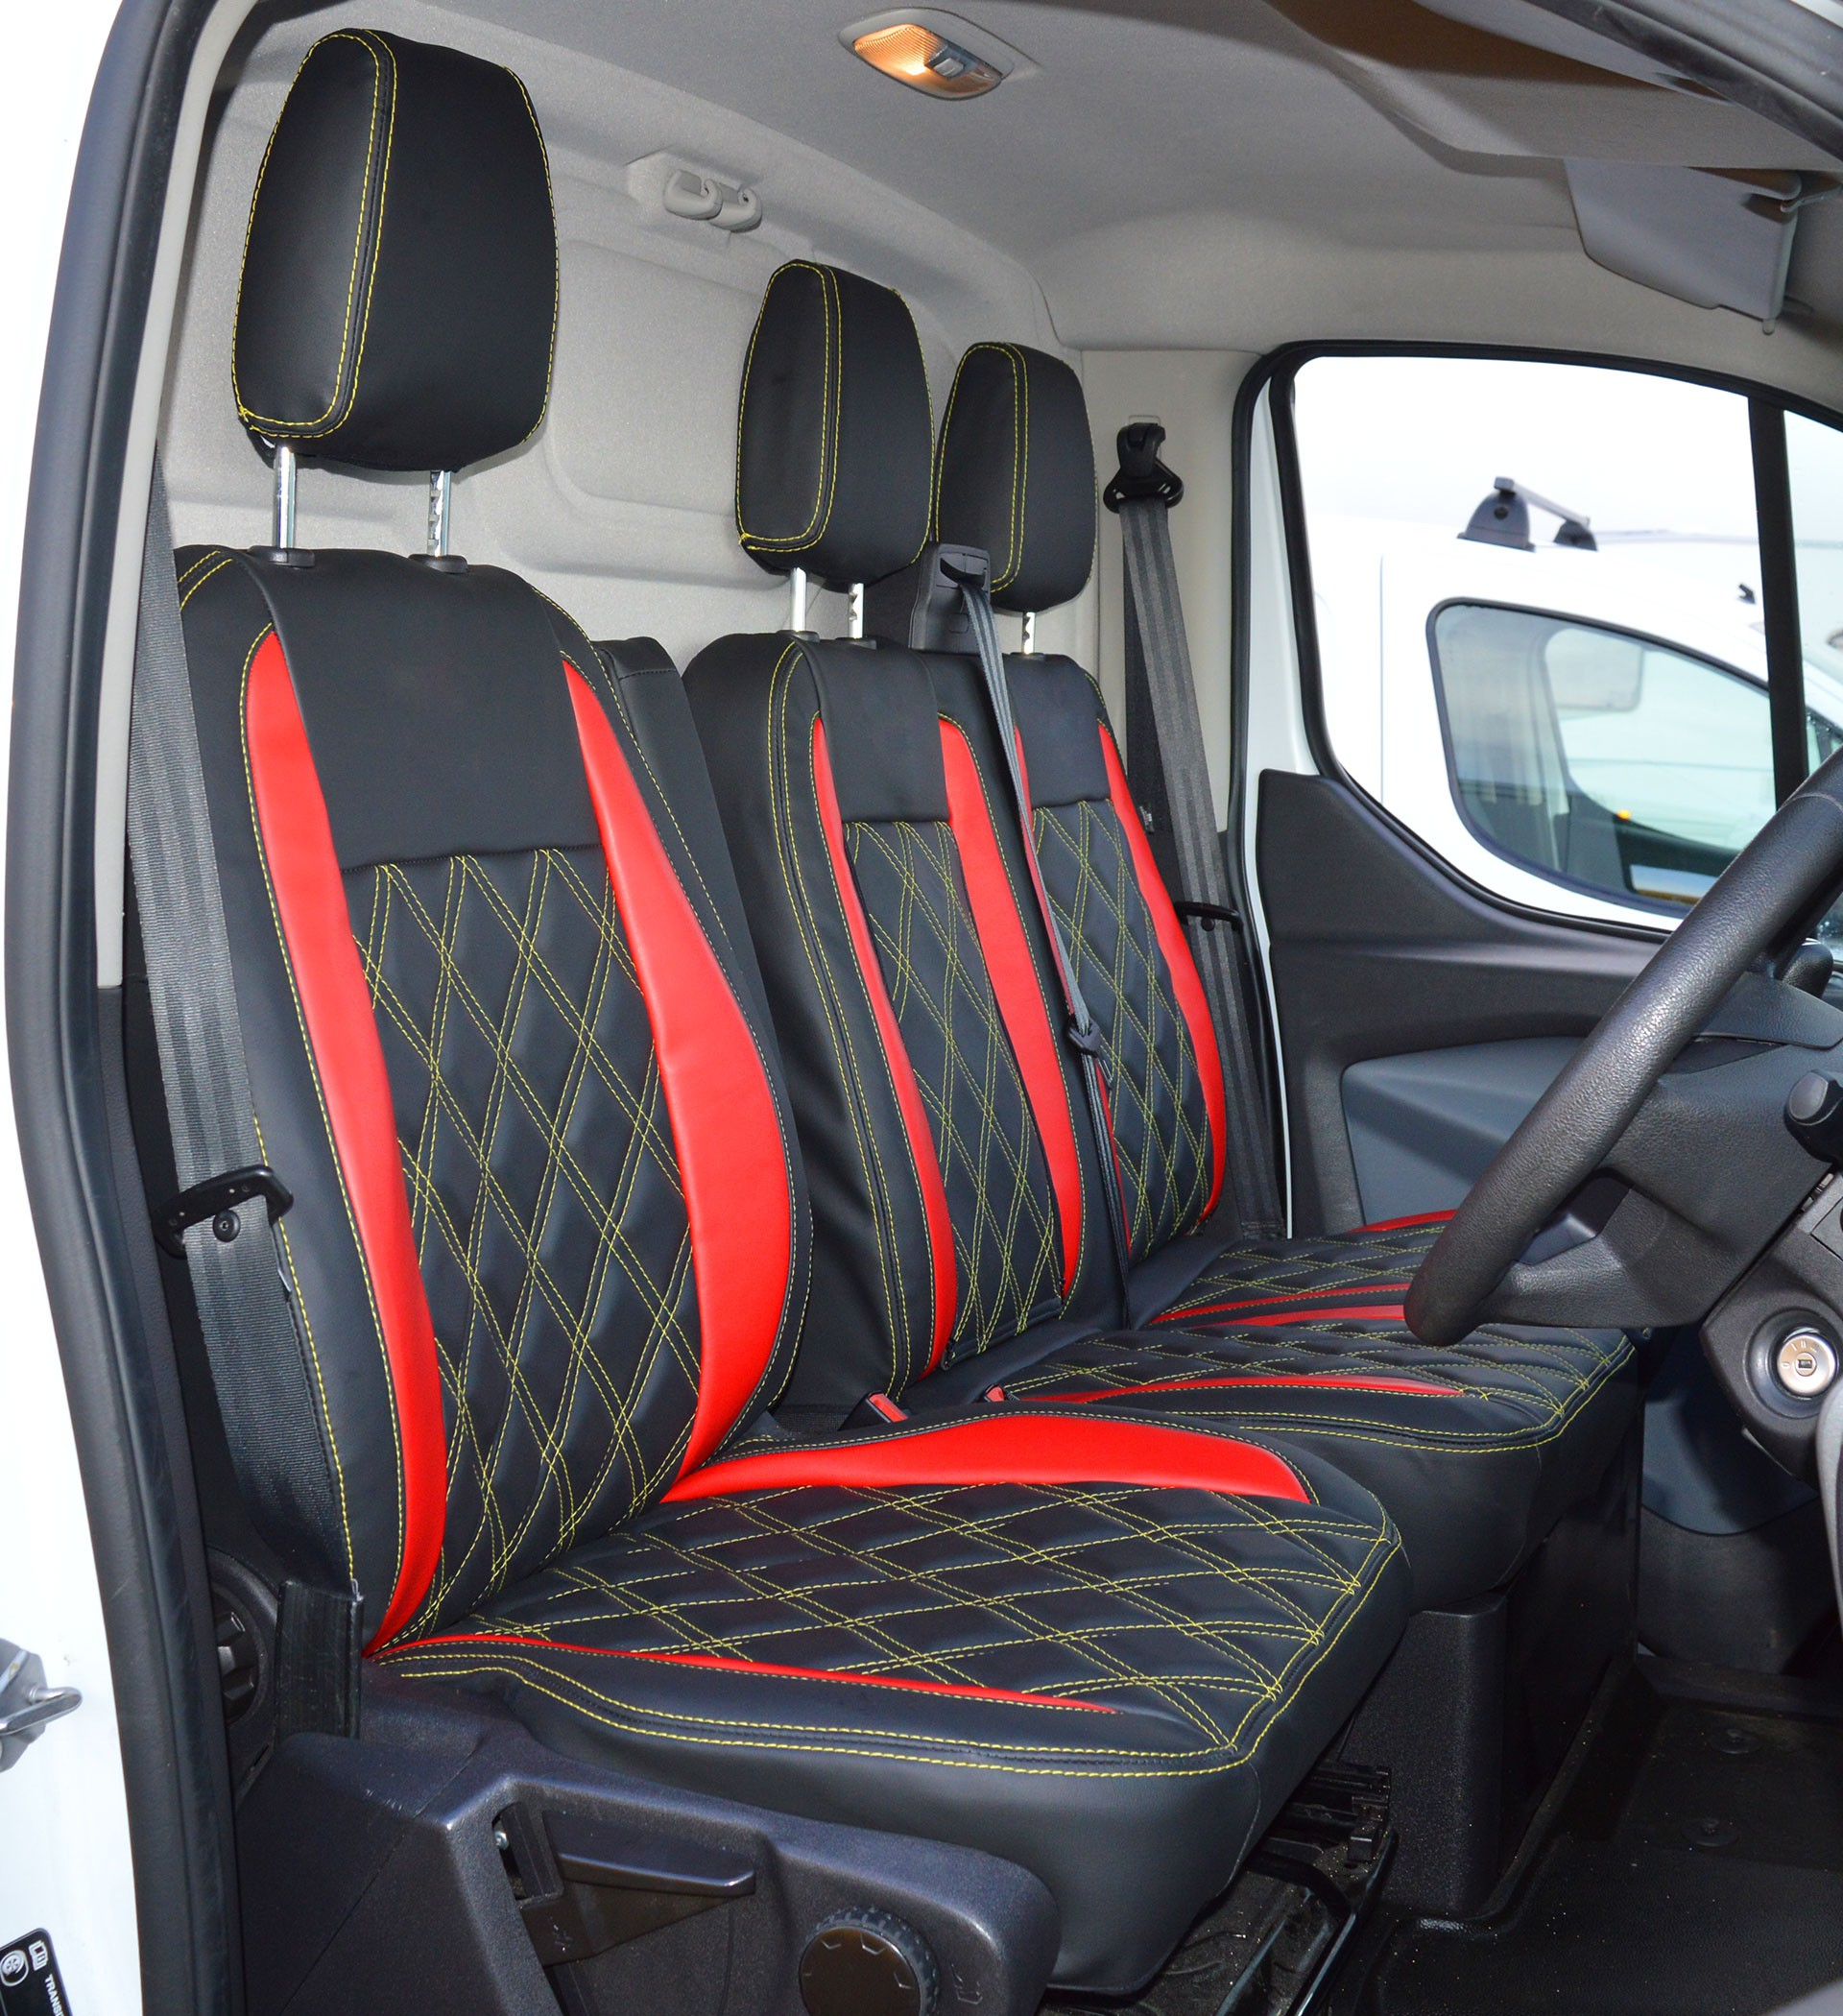 Ford Transit Custom Waterproof Tailored Van Seat Cover With Diamond Quilting, Yellow Stitching ...